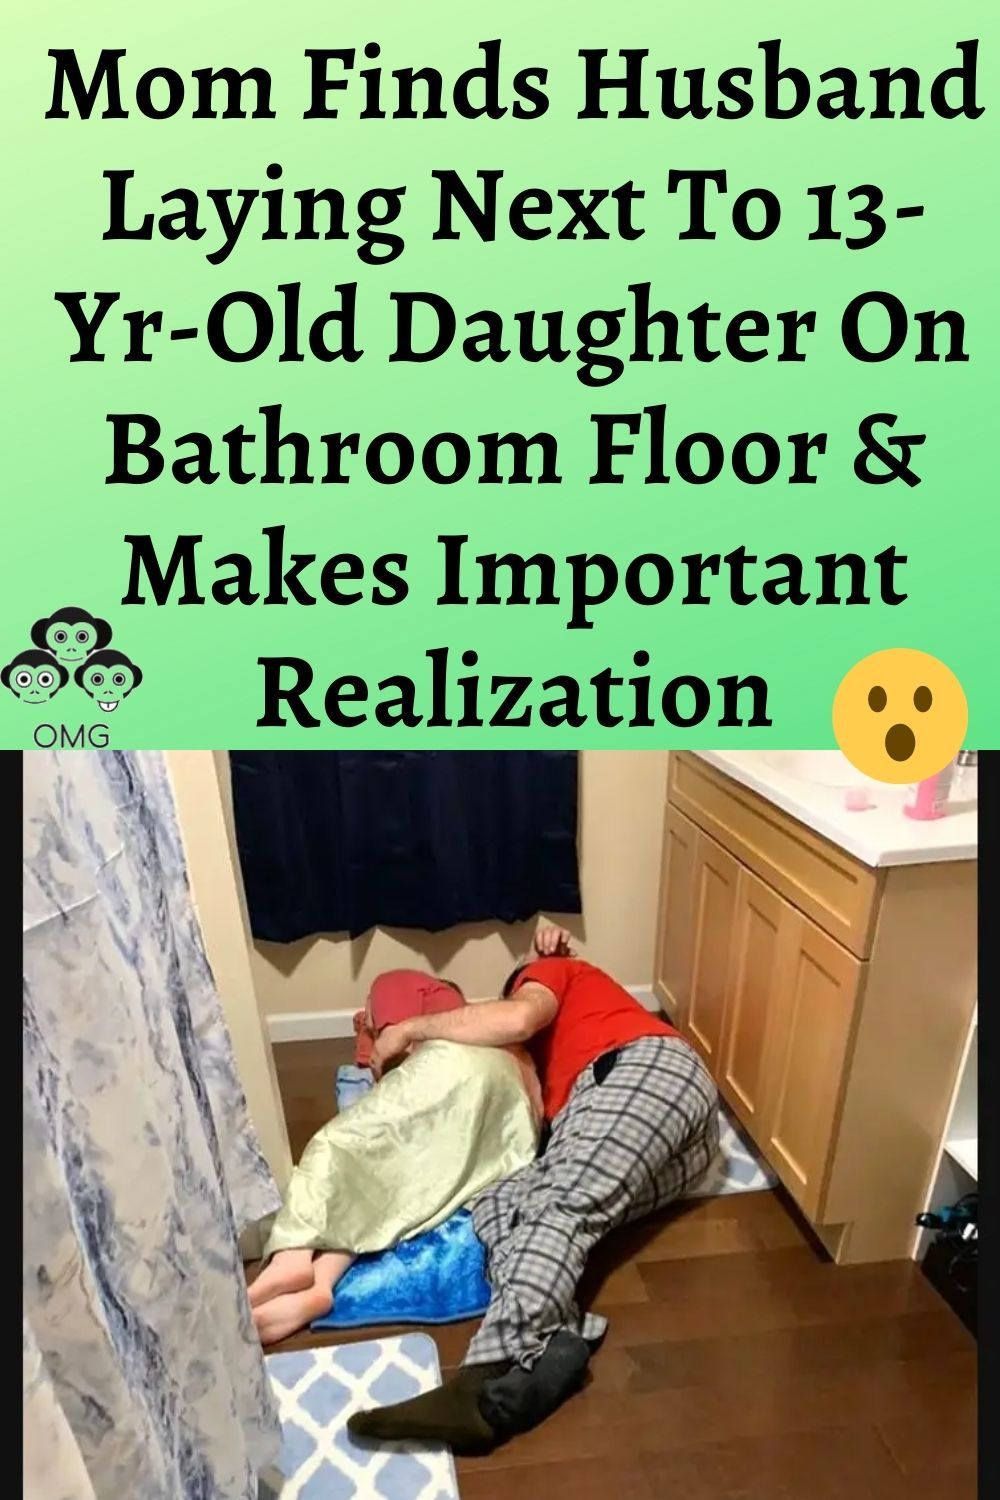 Mom Finds Husband Laying Next To 13 Yr Old Daughter On Bathroom Floor Makes Important Realization In 2020 Super Cute Puppies Very Cute Puppies Funny Messages